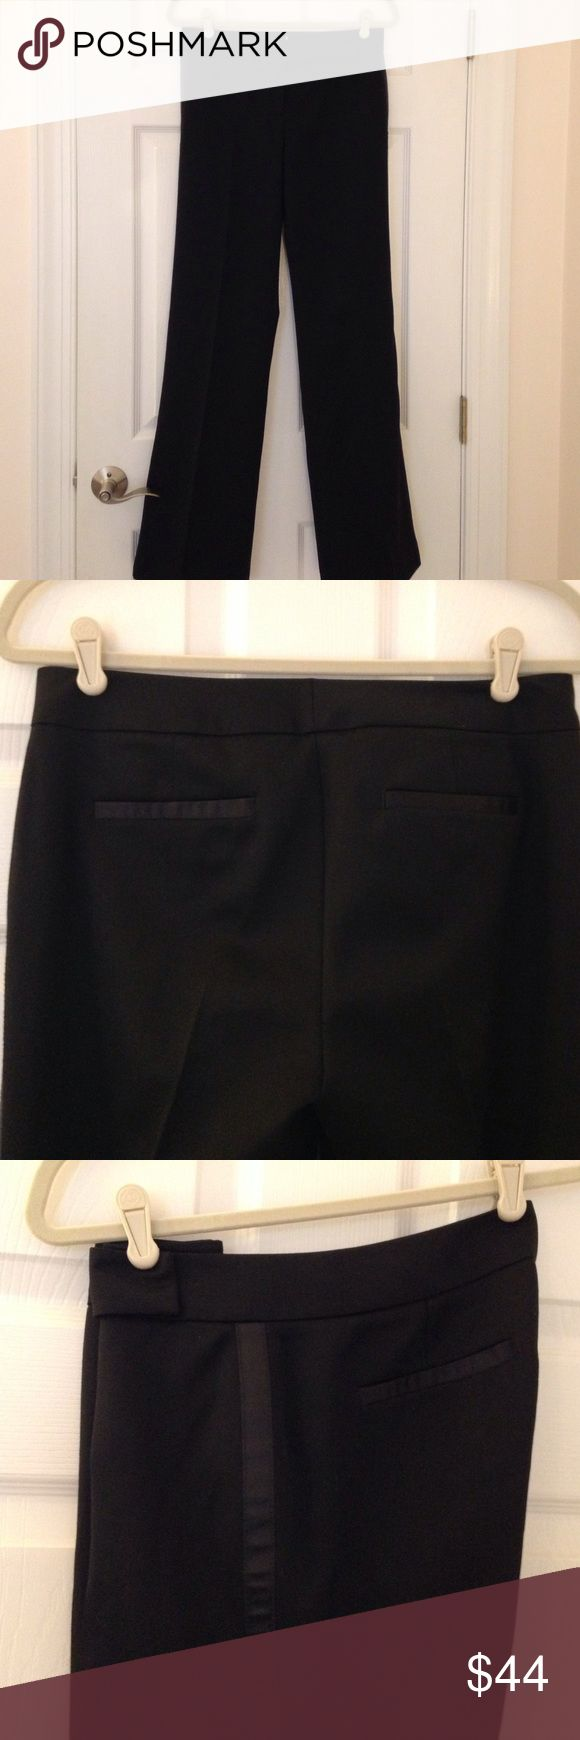 JCrew Black Tuxedo Stripe Pants in Size 4 JCrew Black tuxedo stripe pants in Favorite fit. These pants are size 4, never worn and still have some of the tags. They are made of 100% virgin wool and also lined in black 100% acetate. They have a black tuxedo stripe down the sides and this also accents the back pockets. J. Crew Pants Trousers